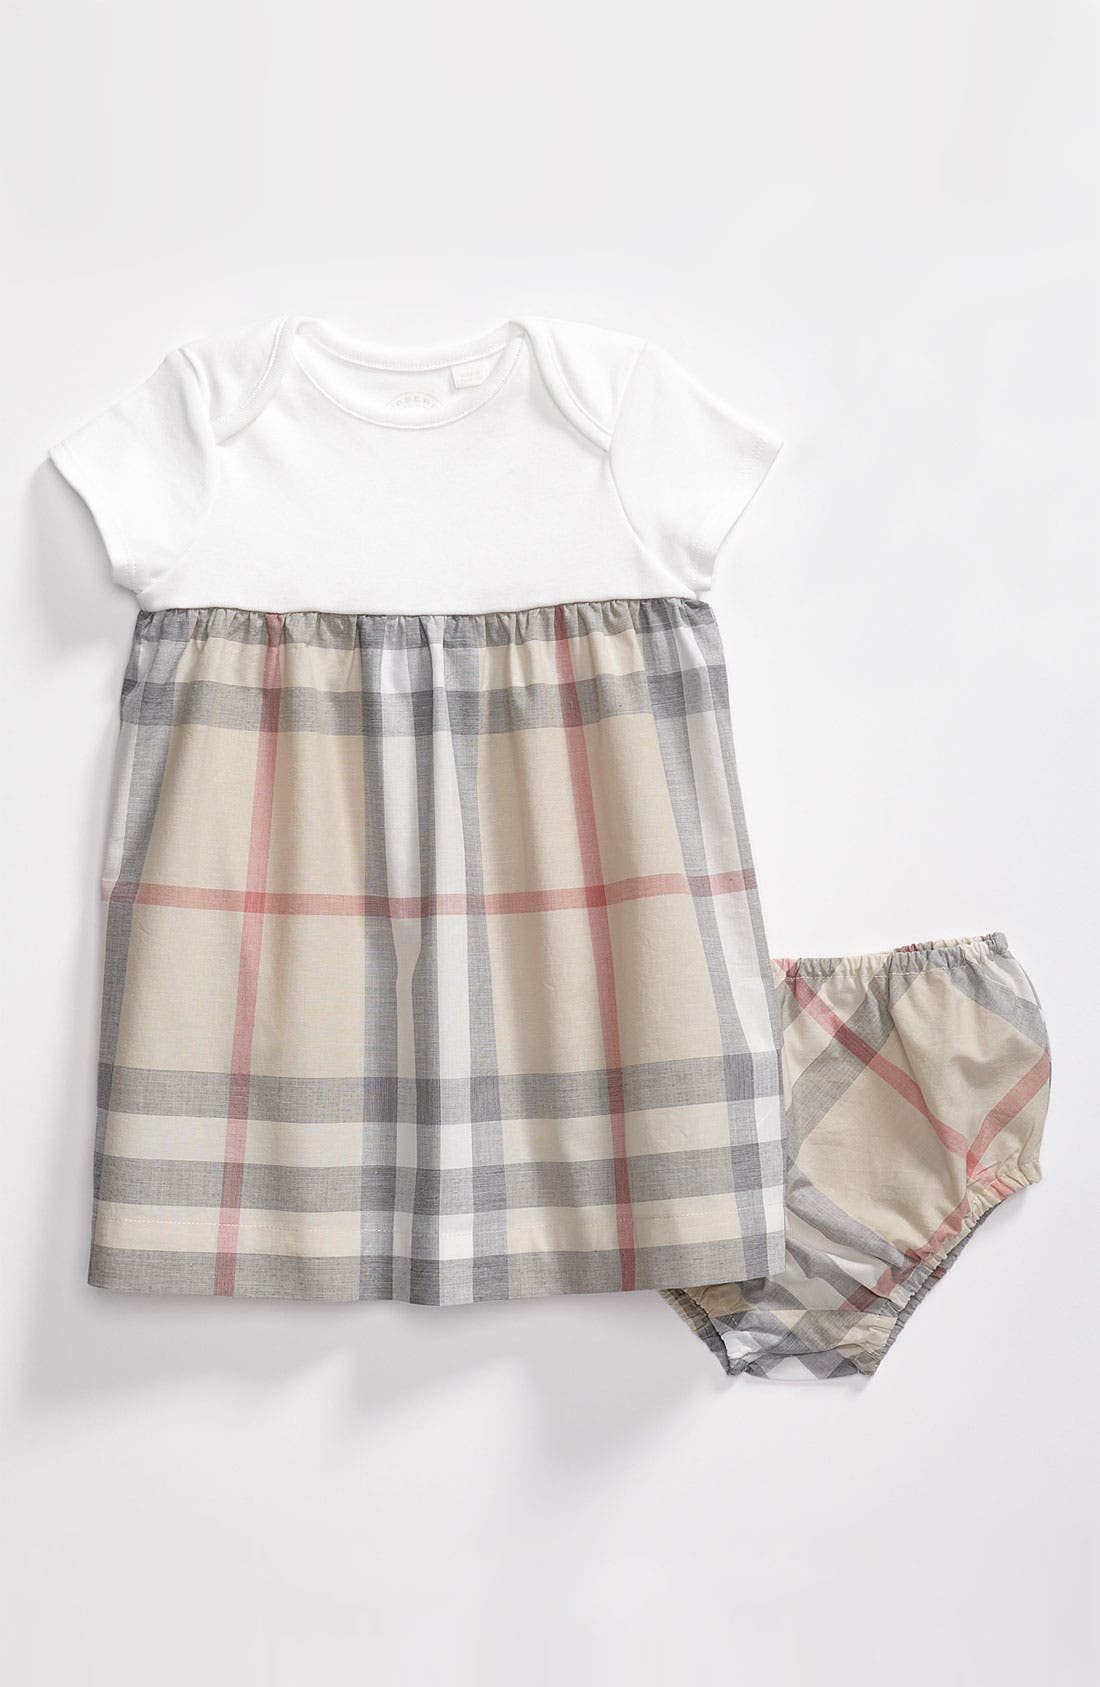 Alternate Image 1 Selected - Burberry Dress (Baby)